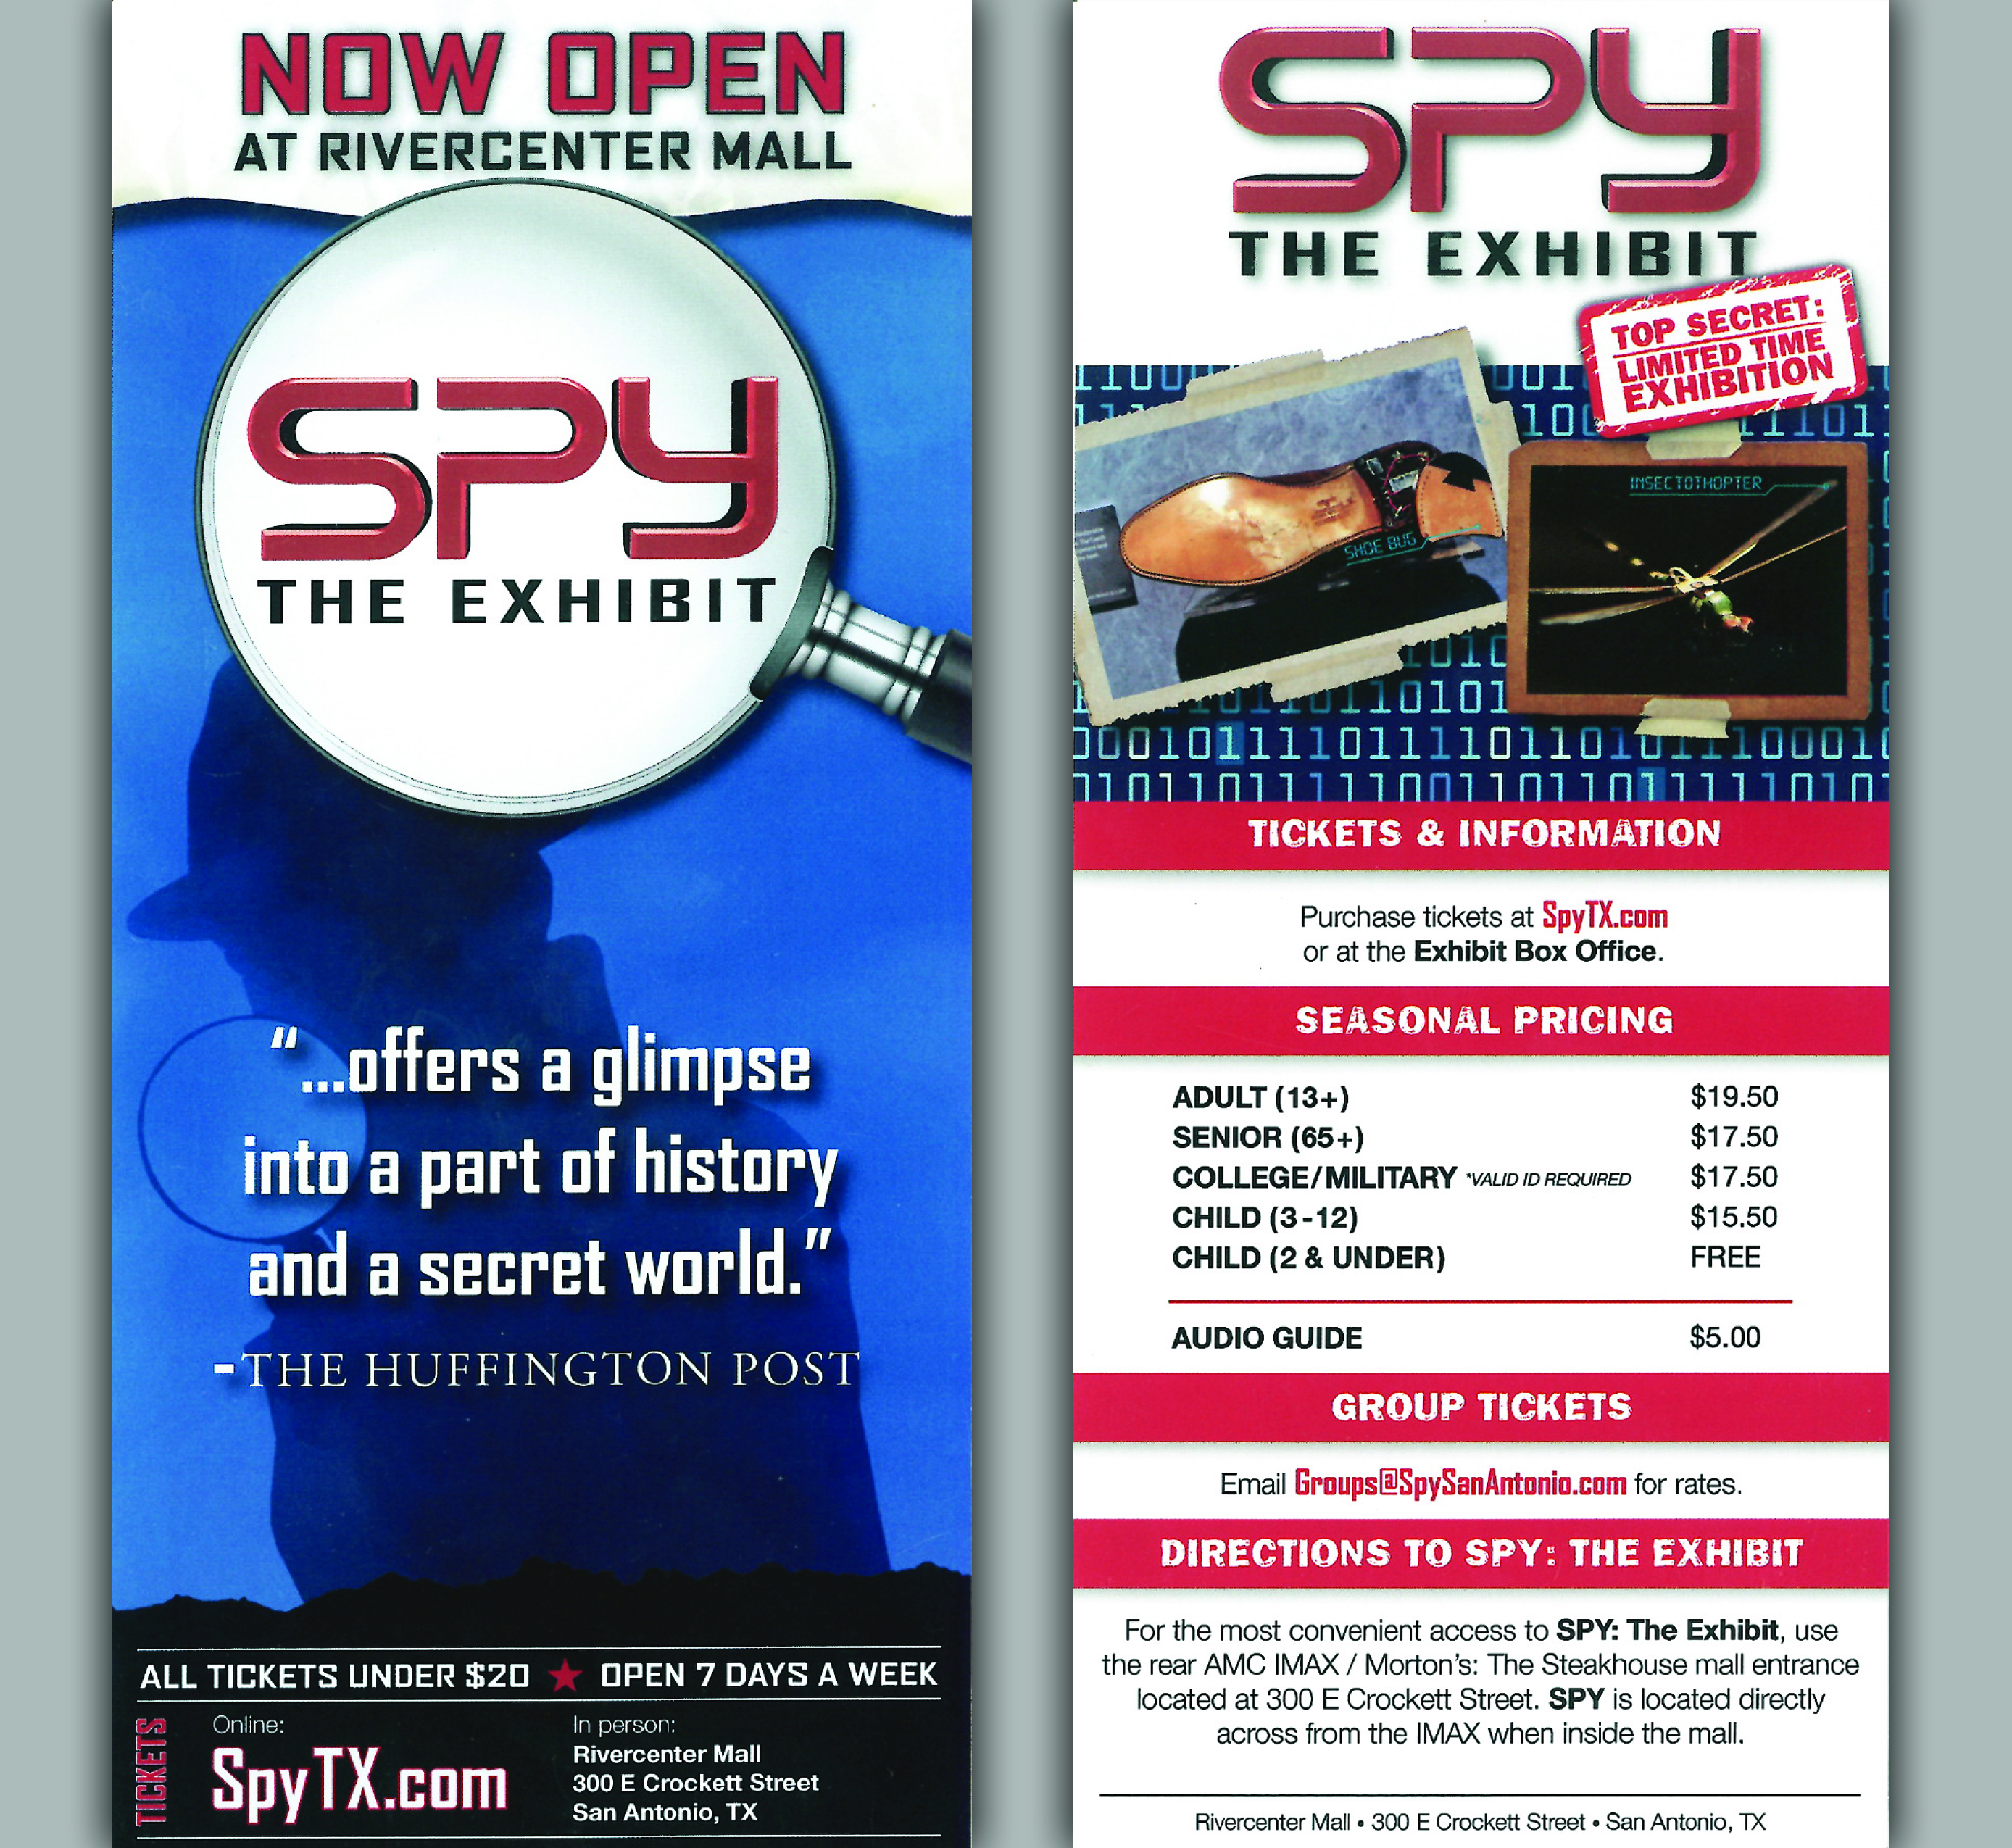 SPY: The Exhibit